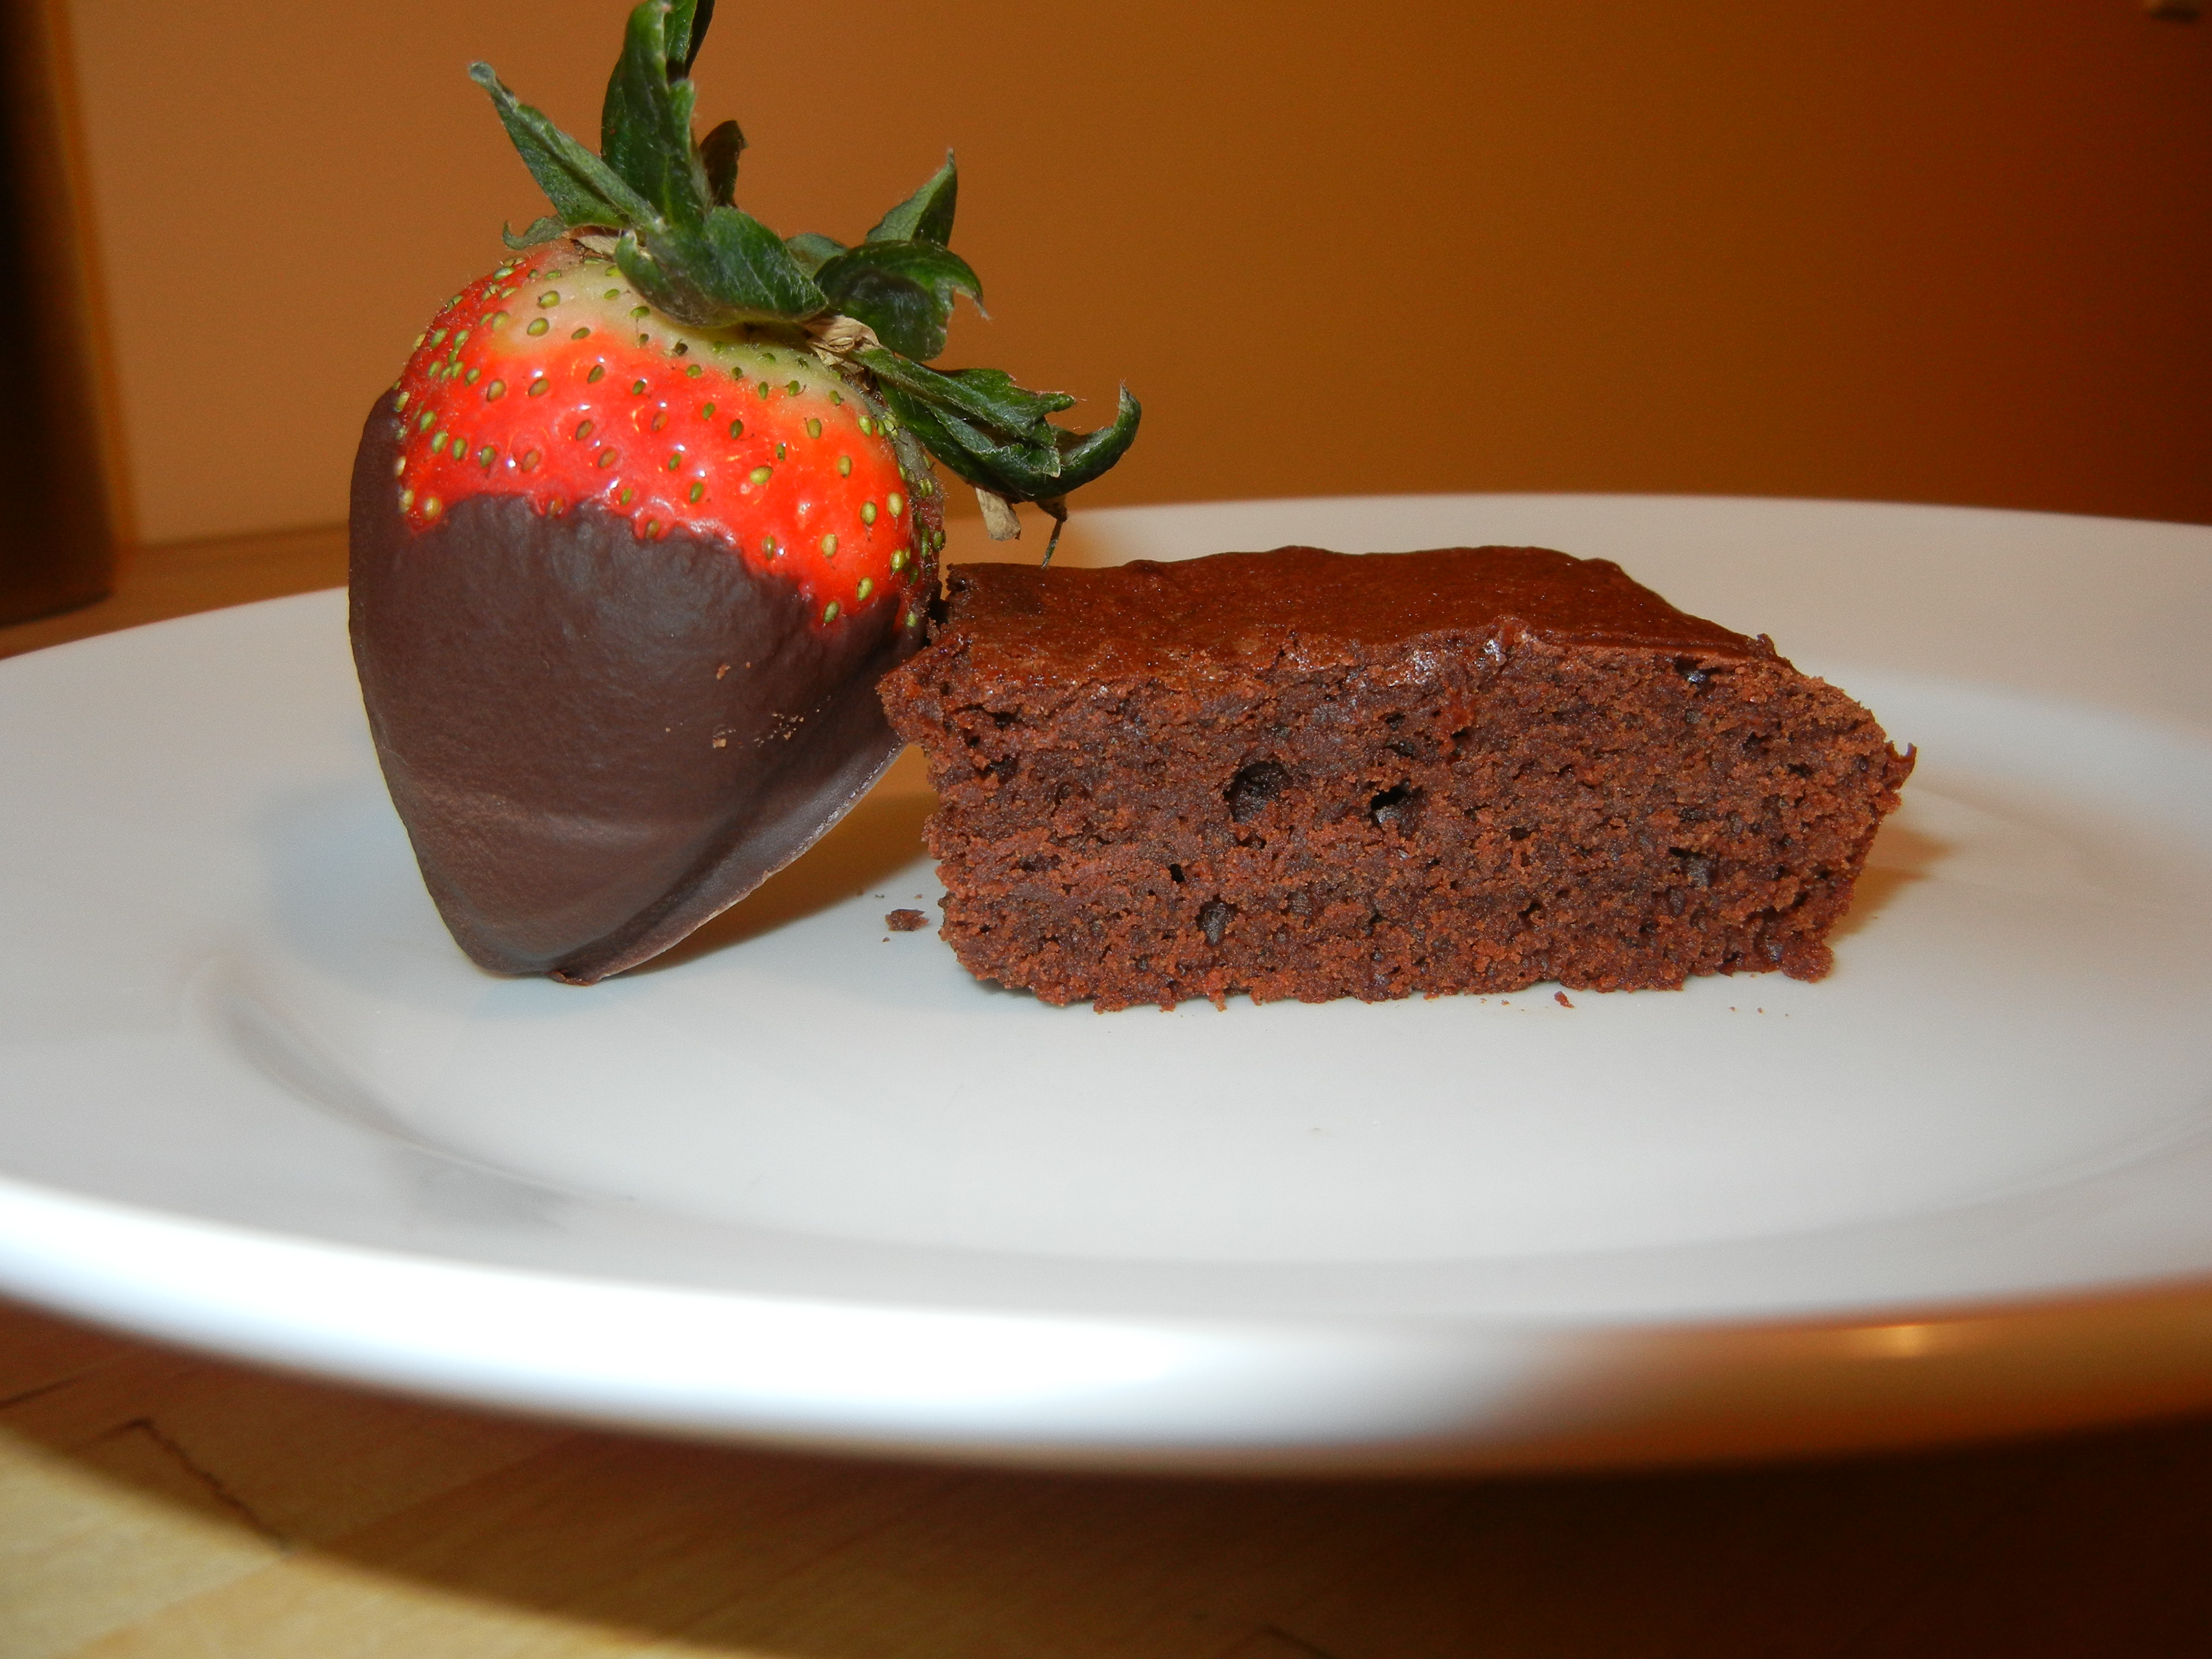 Strawberries and brownies